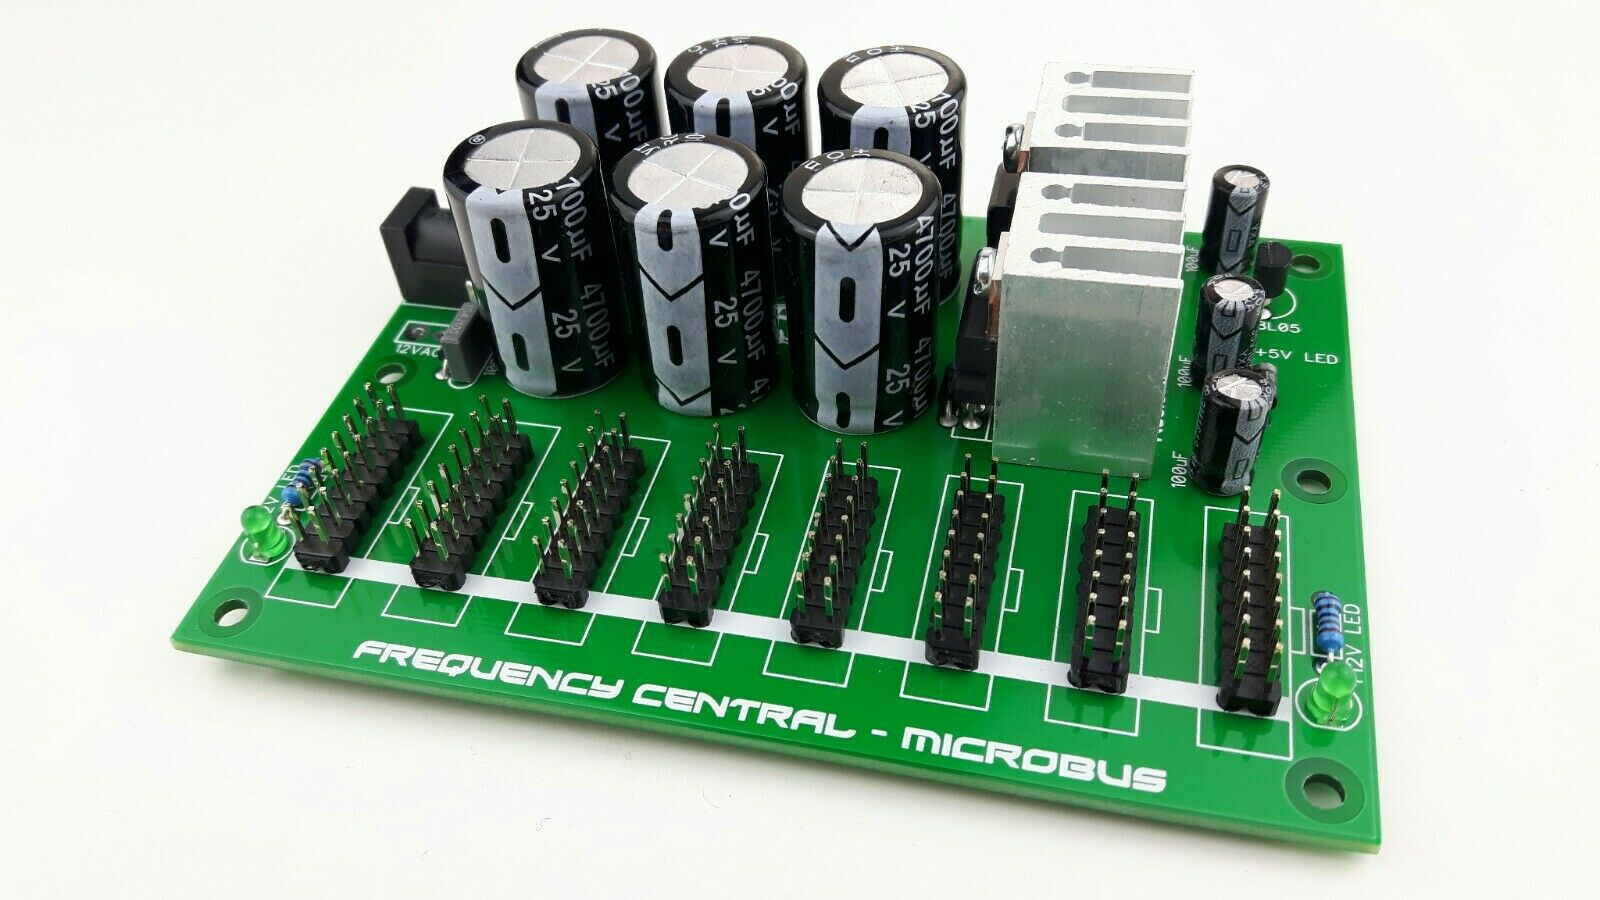 Frequency Central Microbus Power Supply - Assembled - Doepfer - Eurorack